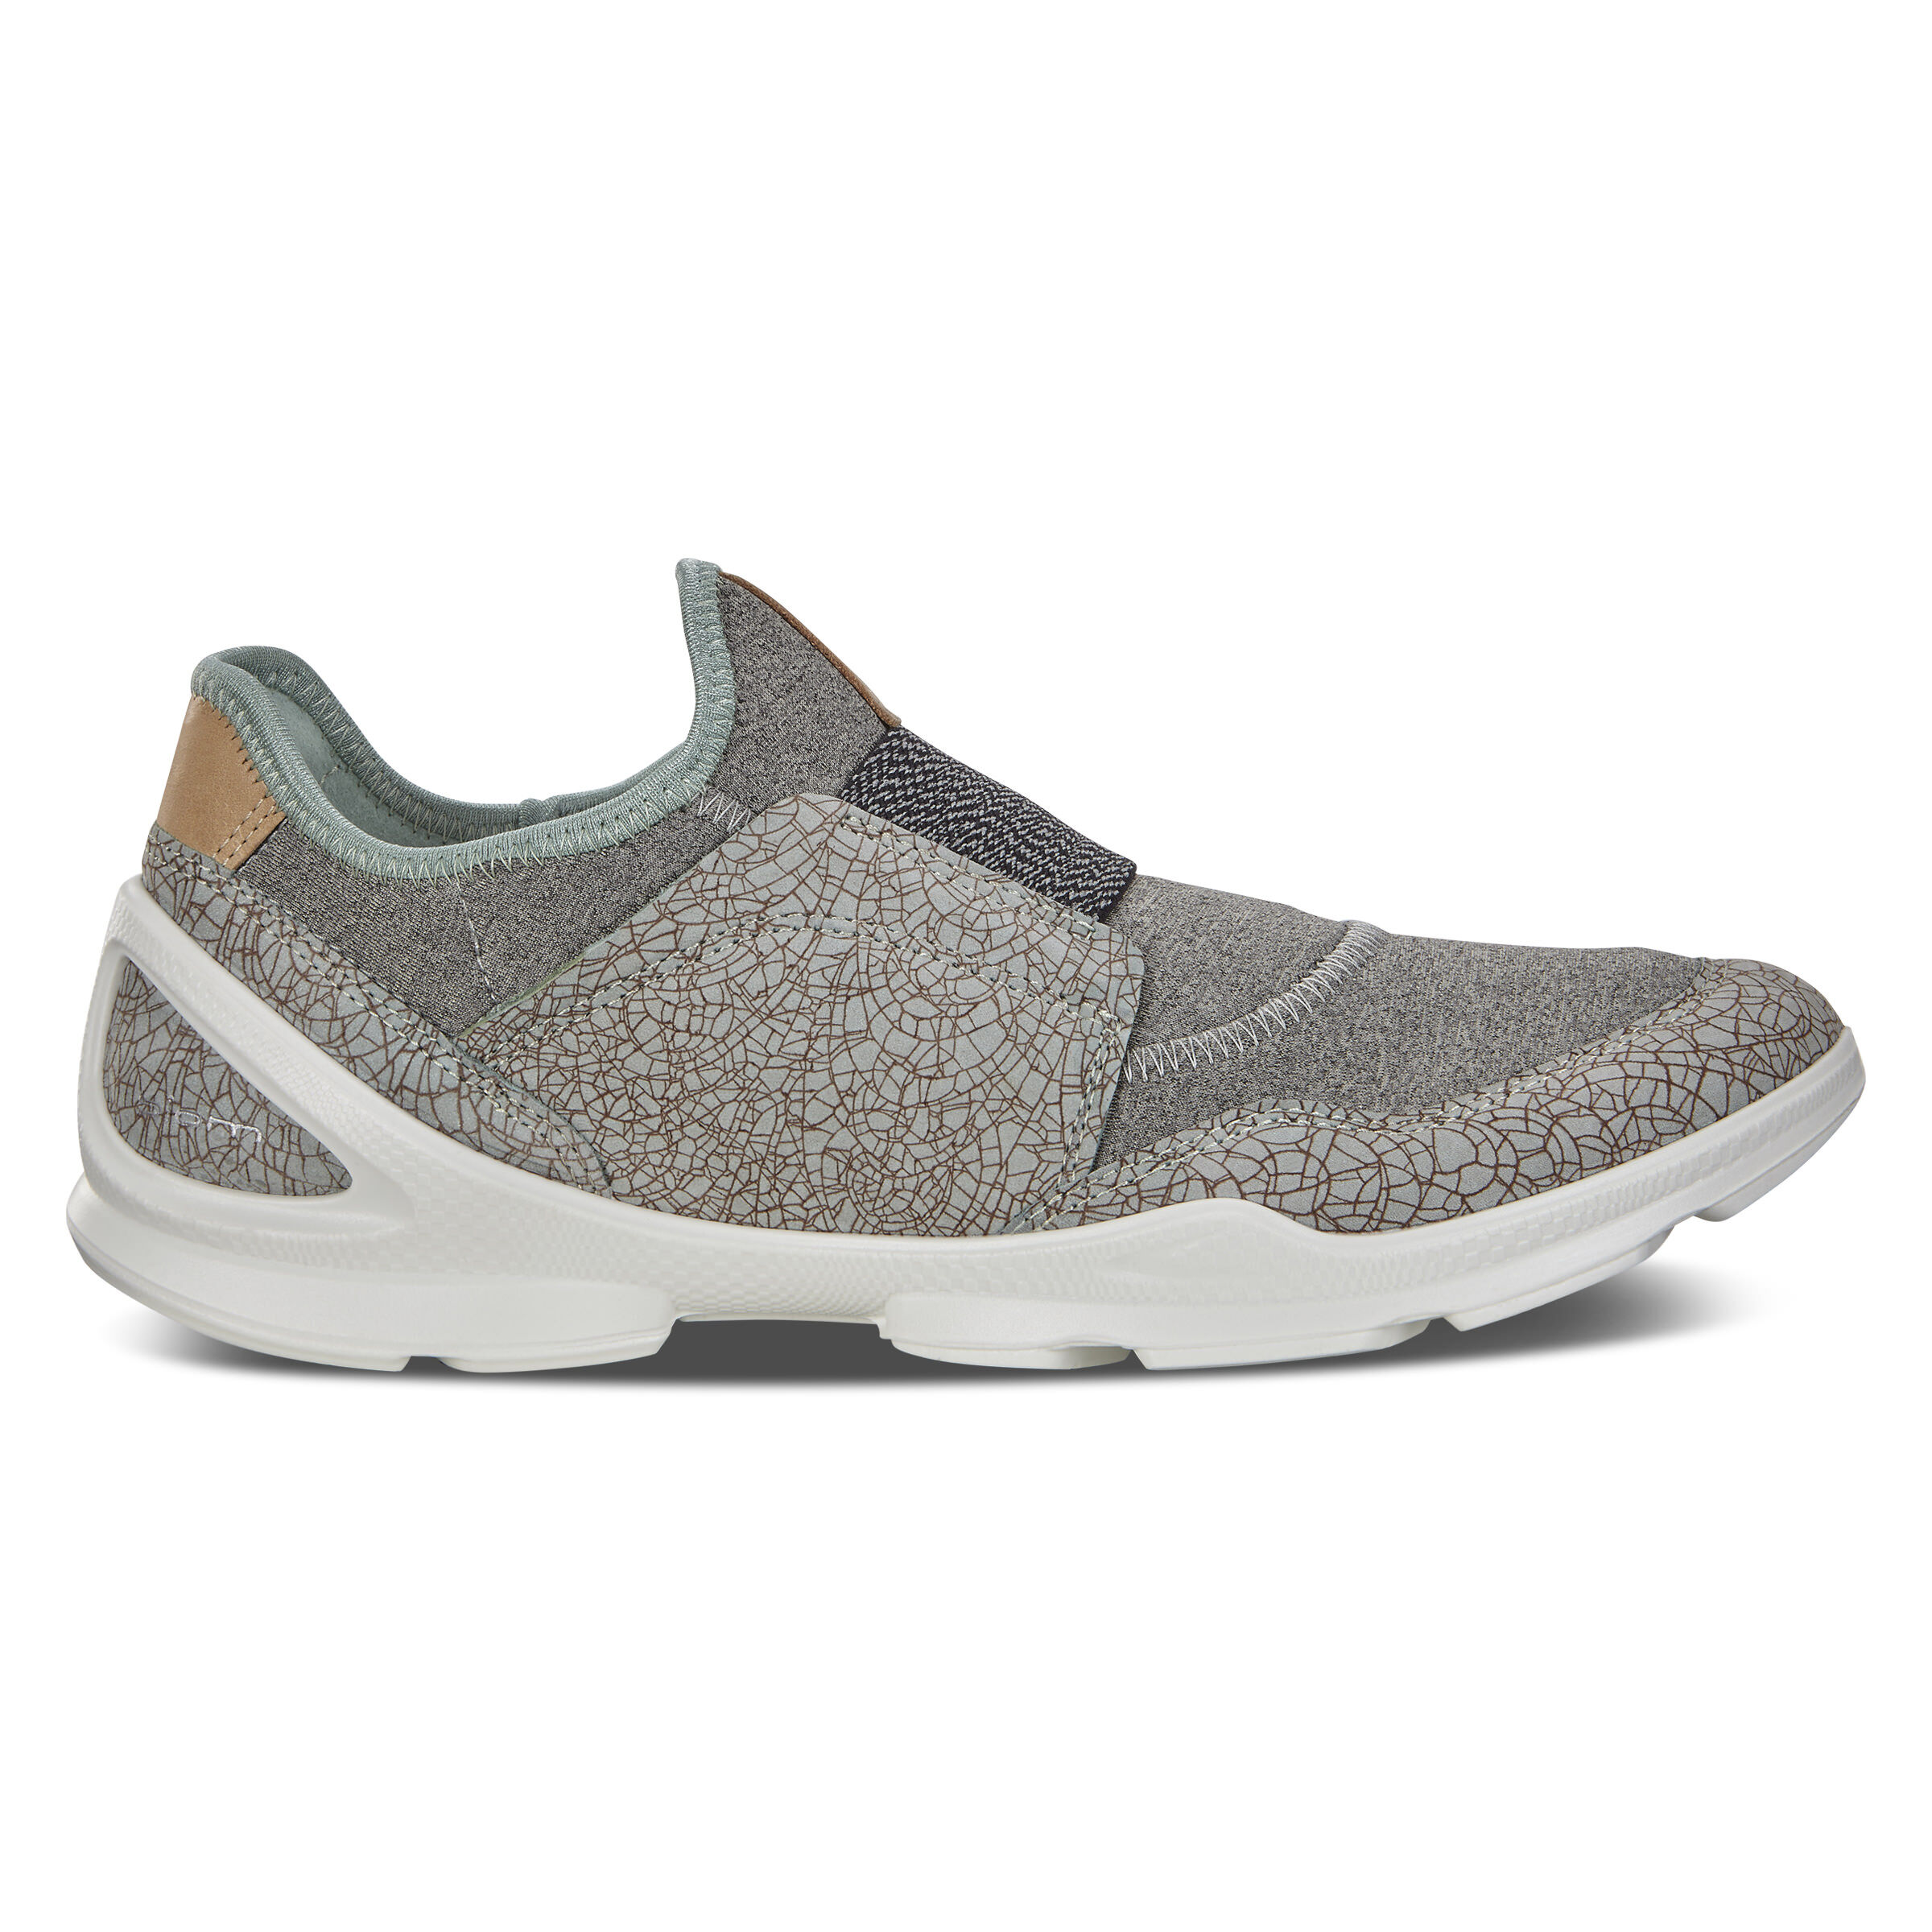 ECCO BIOM Street. Womens Slip-on